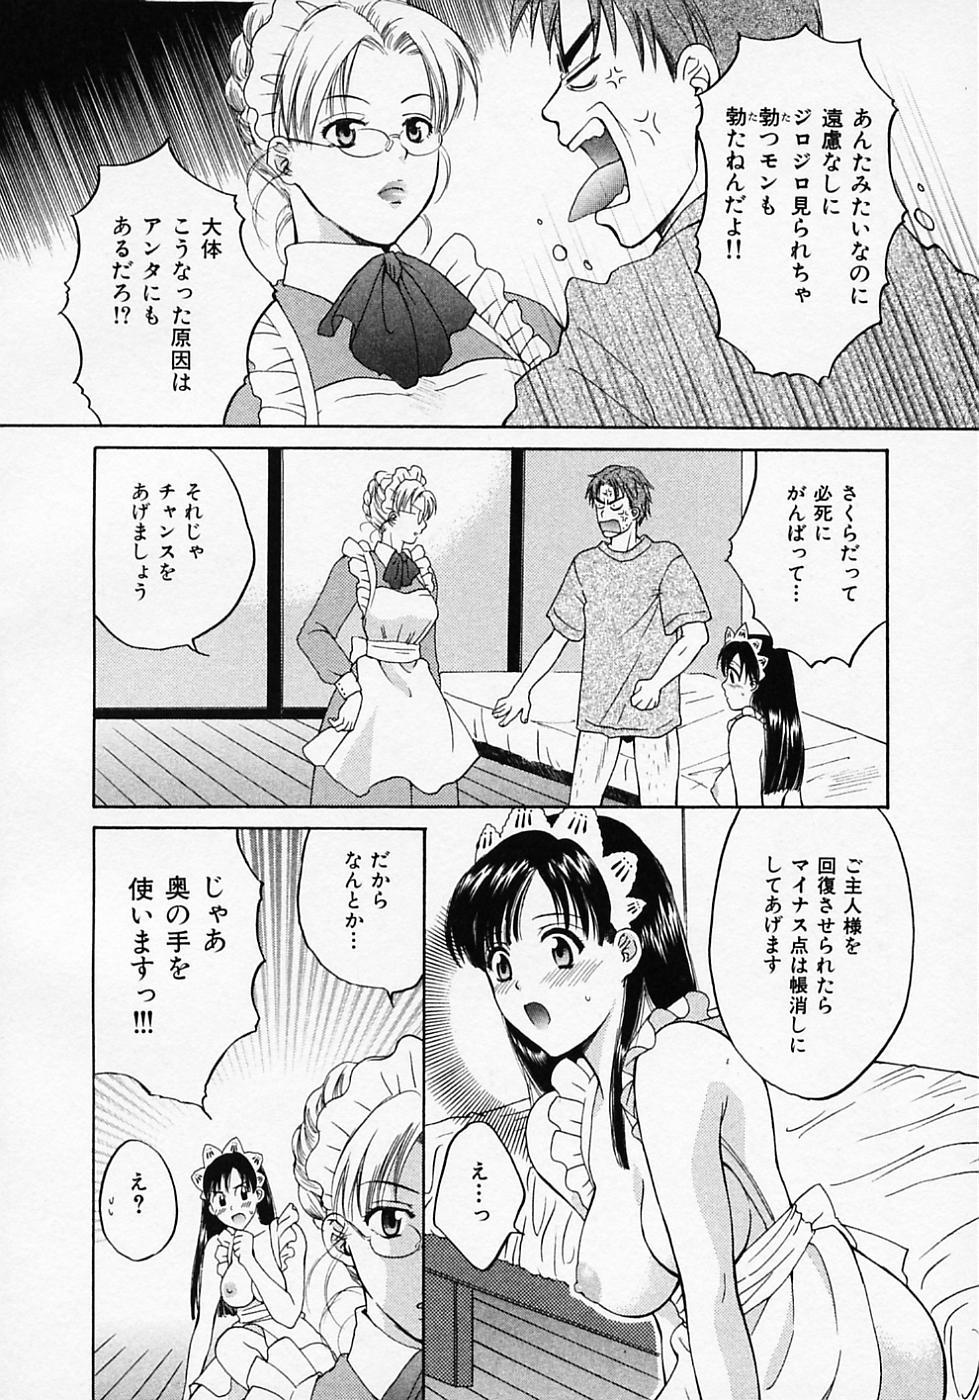 Maid In Japan 37